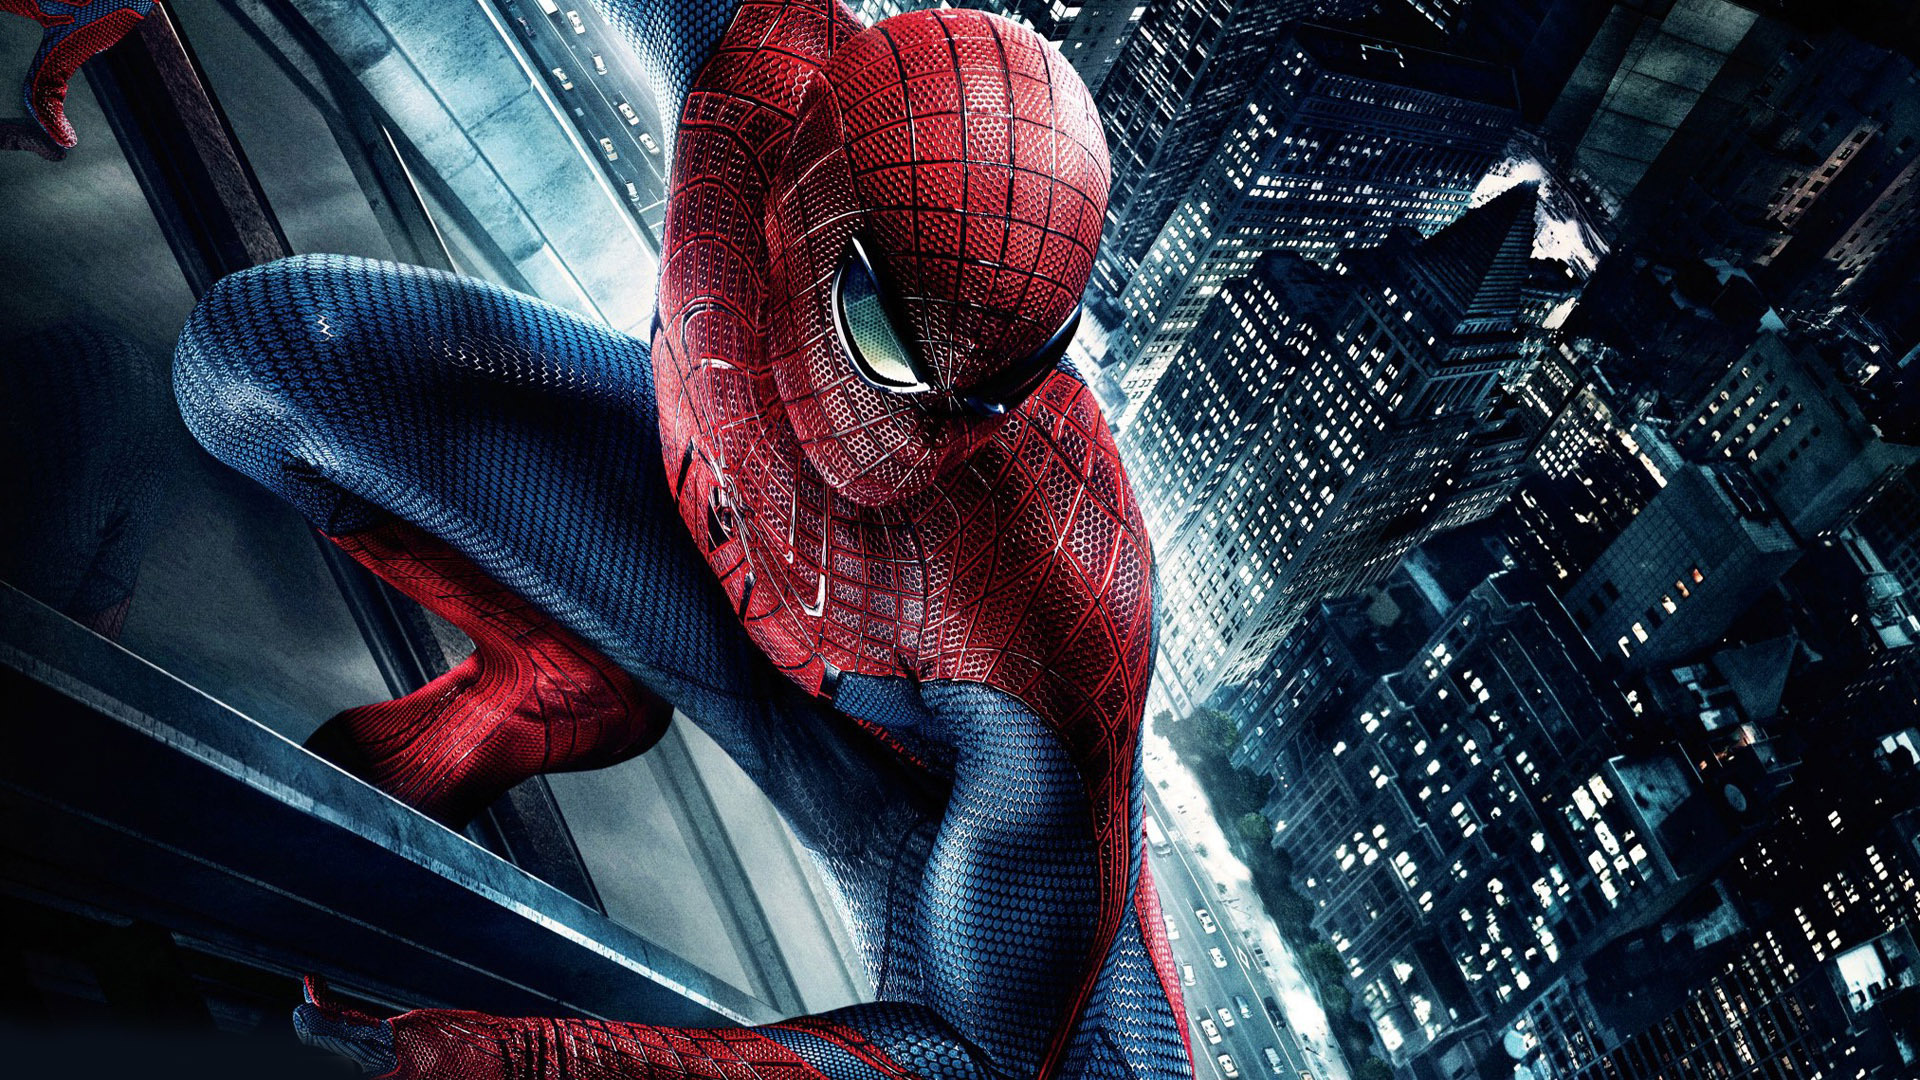 13 The Amazing Spider Man Wallpaper 11375 646  2